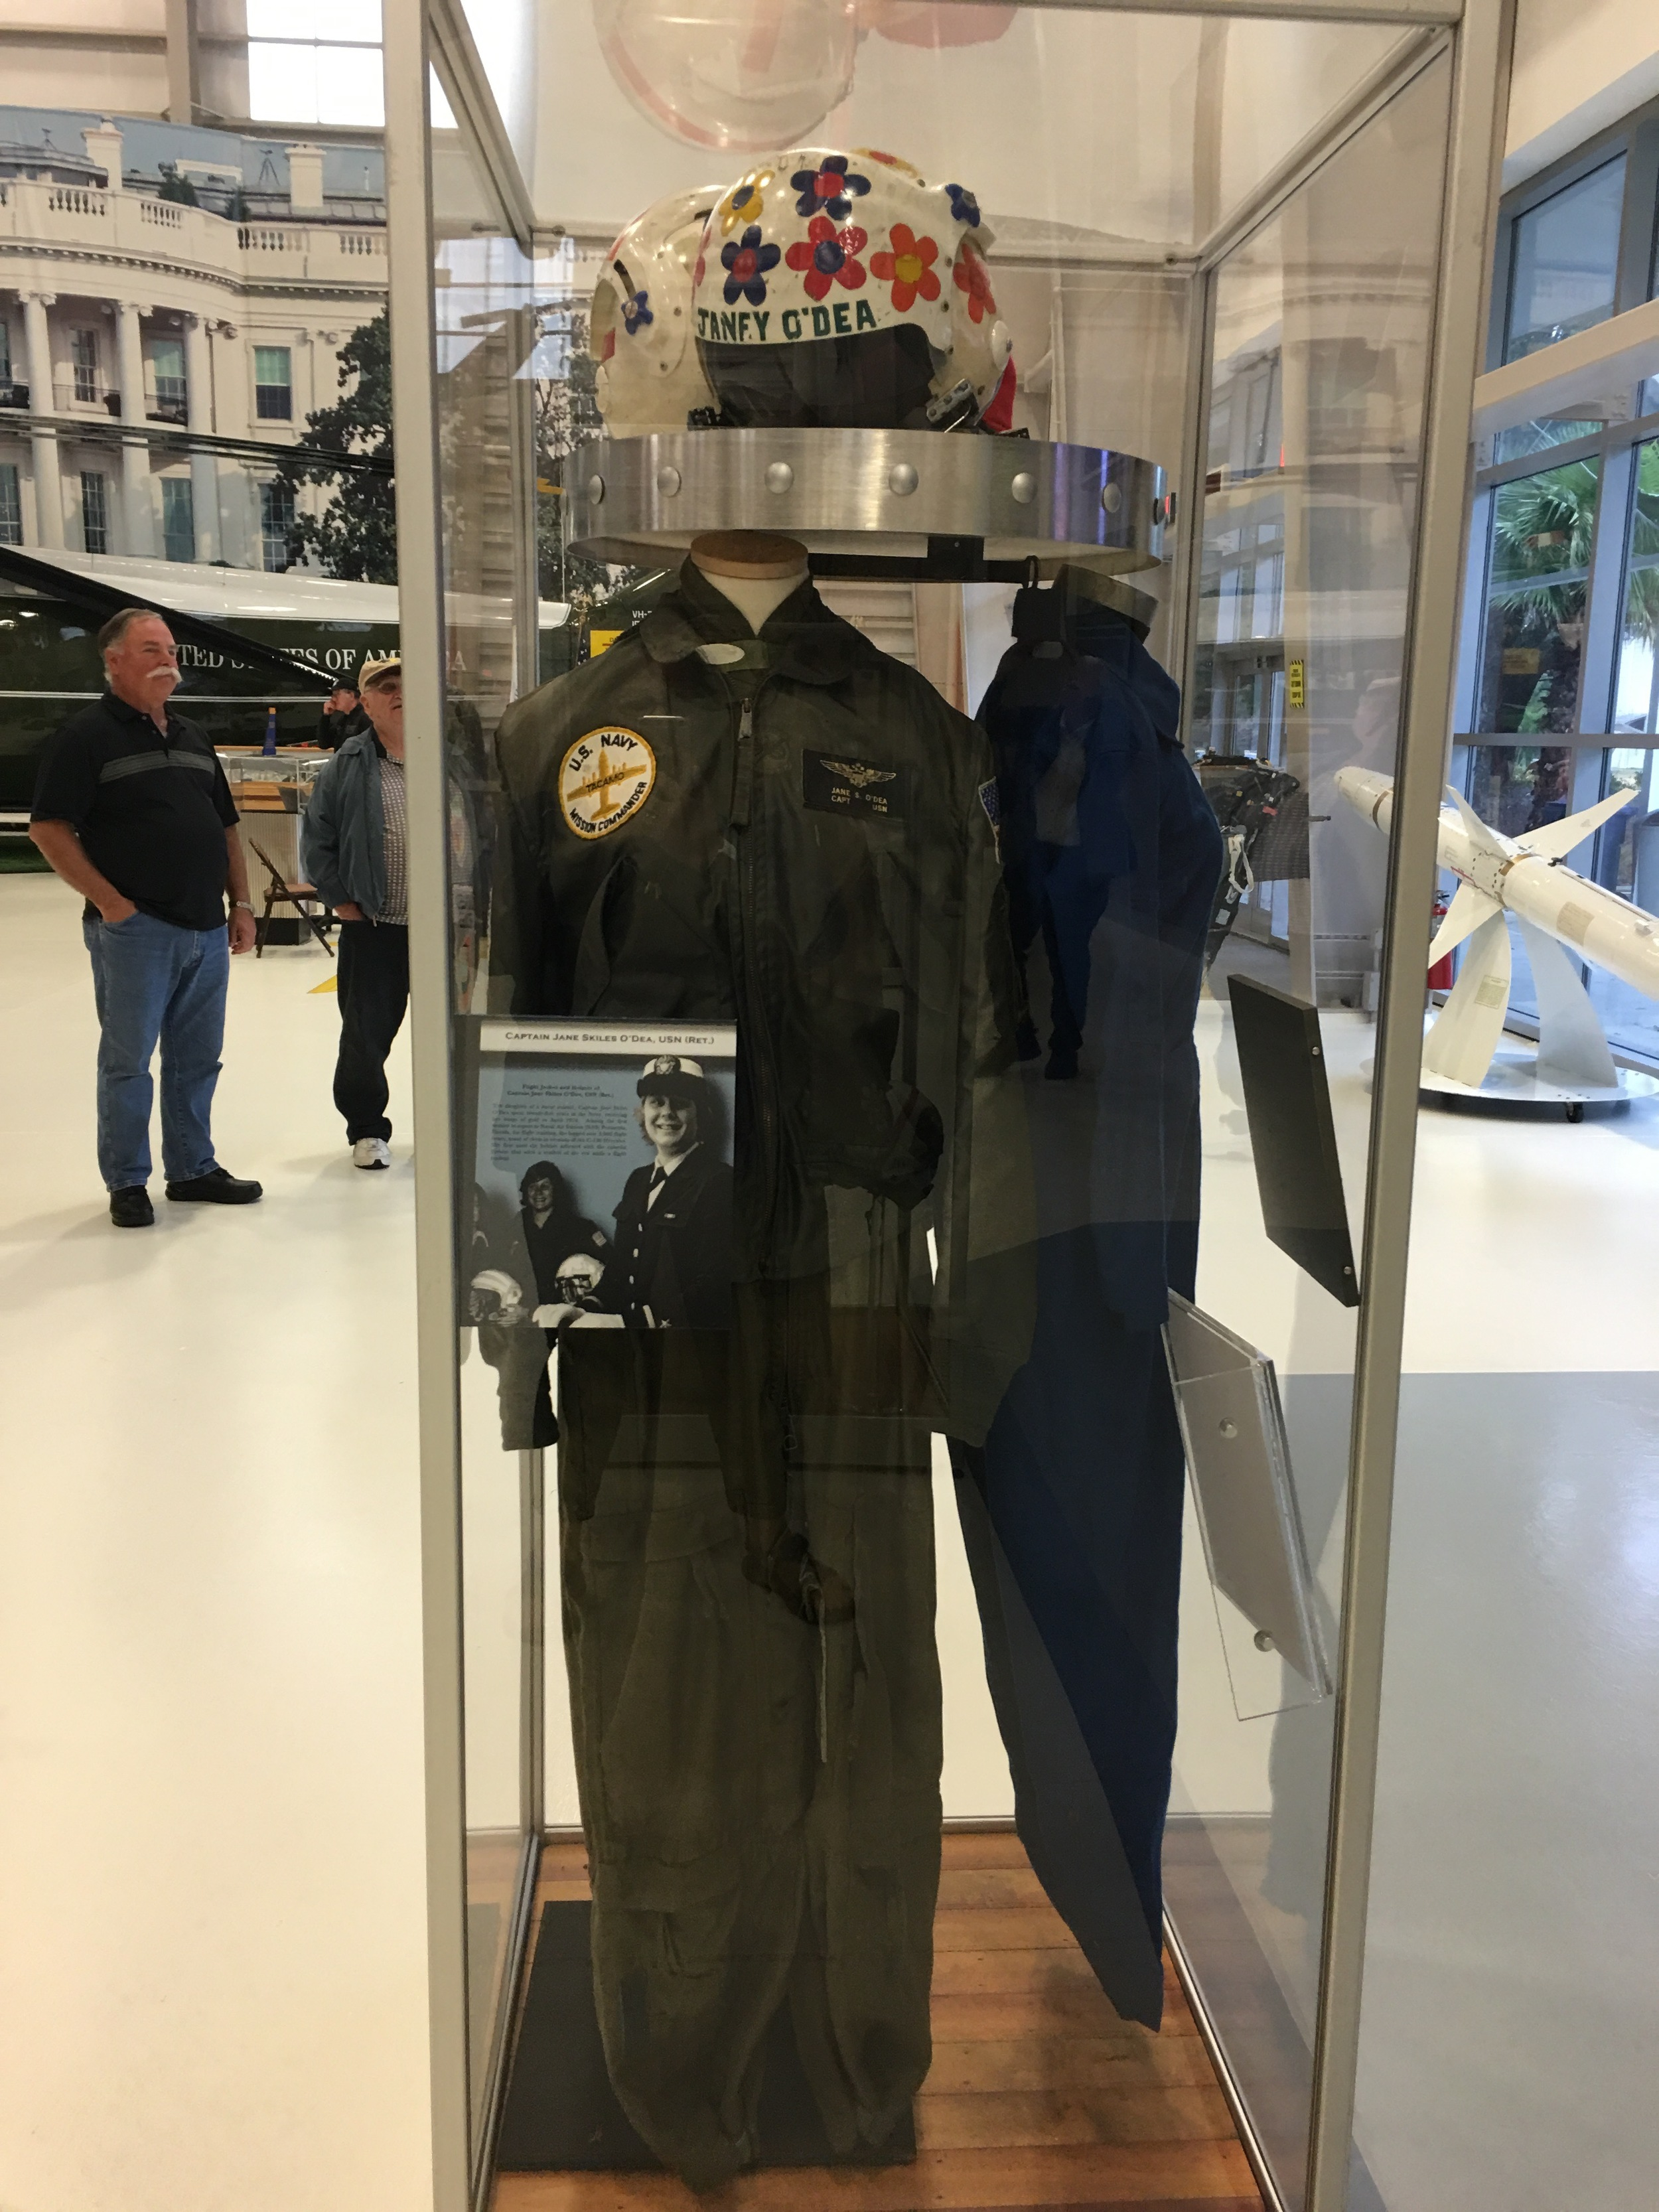 O'Dea's flight suit is in the museum at Pensacola Naval Air Station